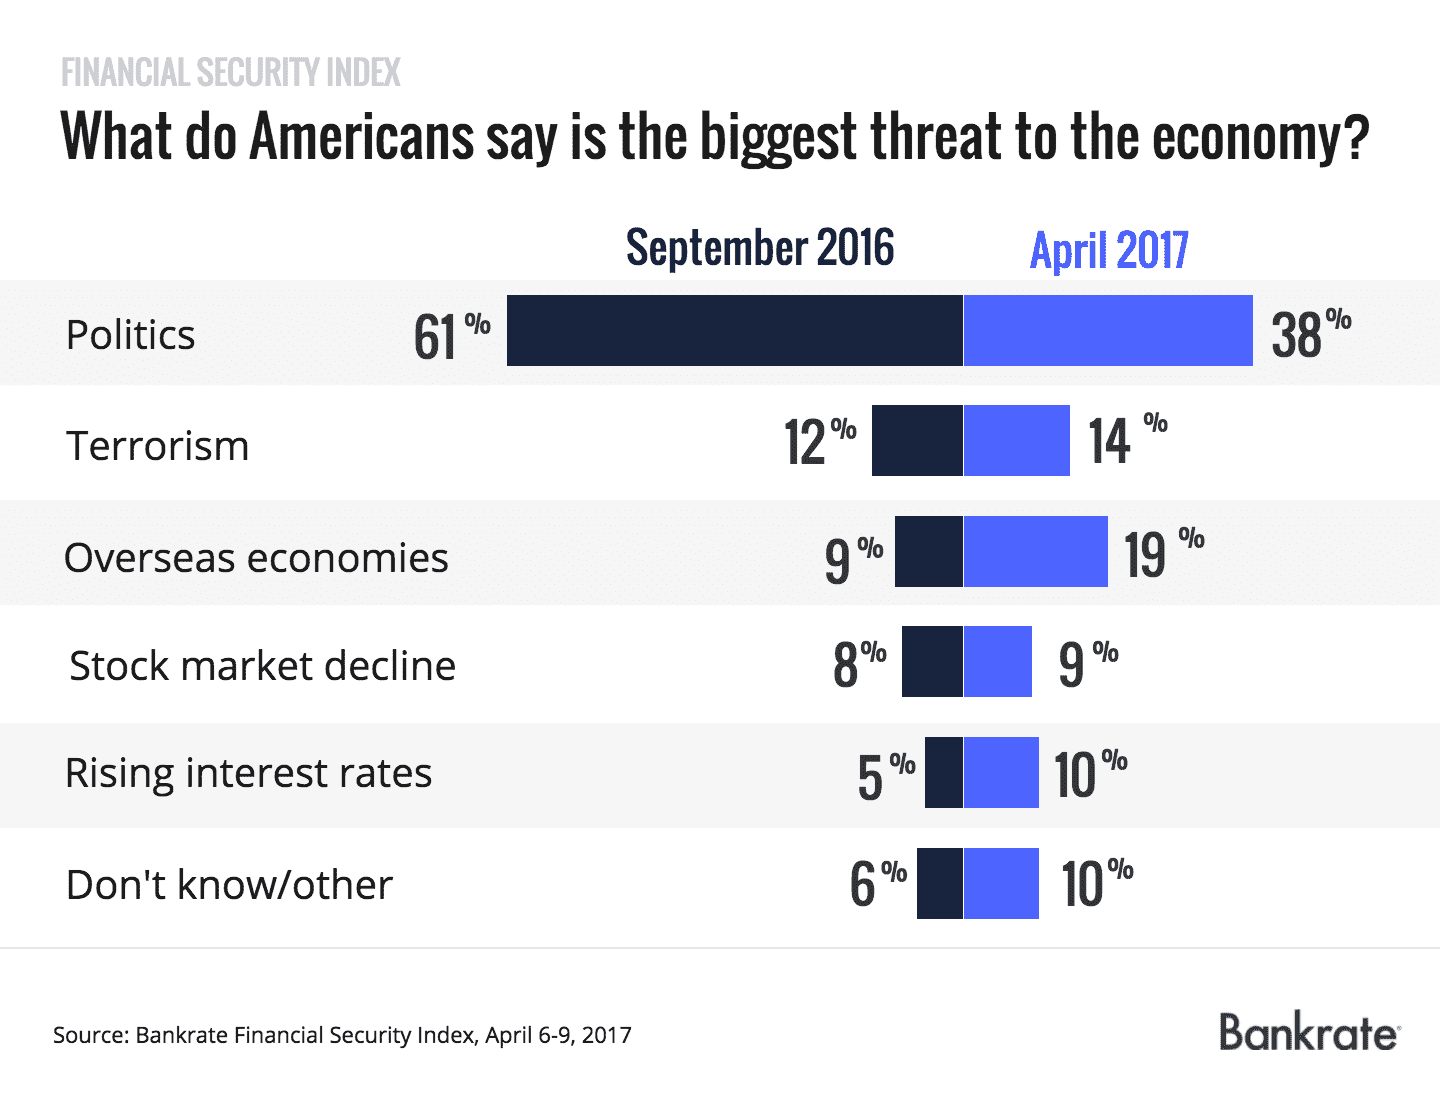 What do Americans say is the biggest threat to the economy?